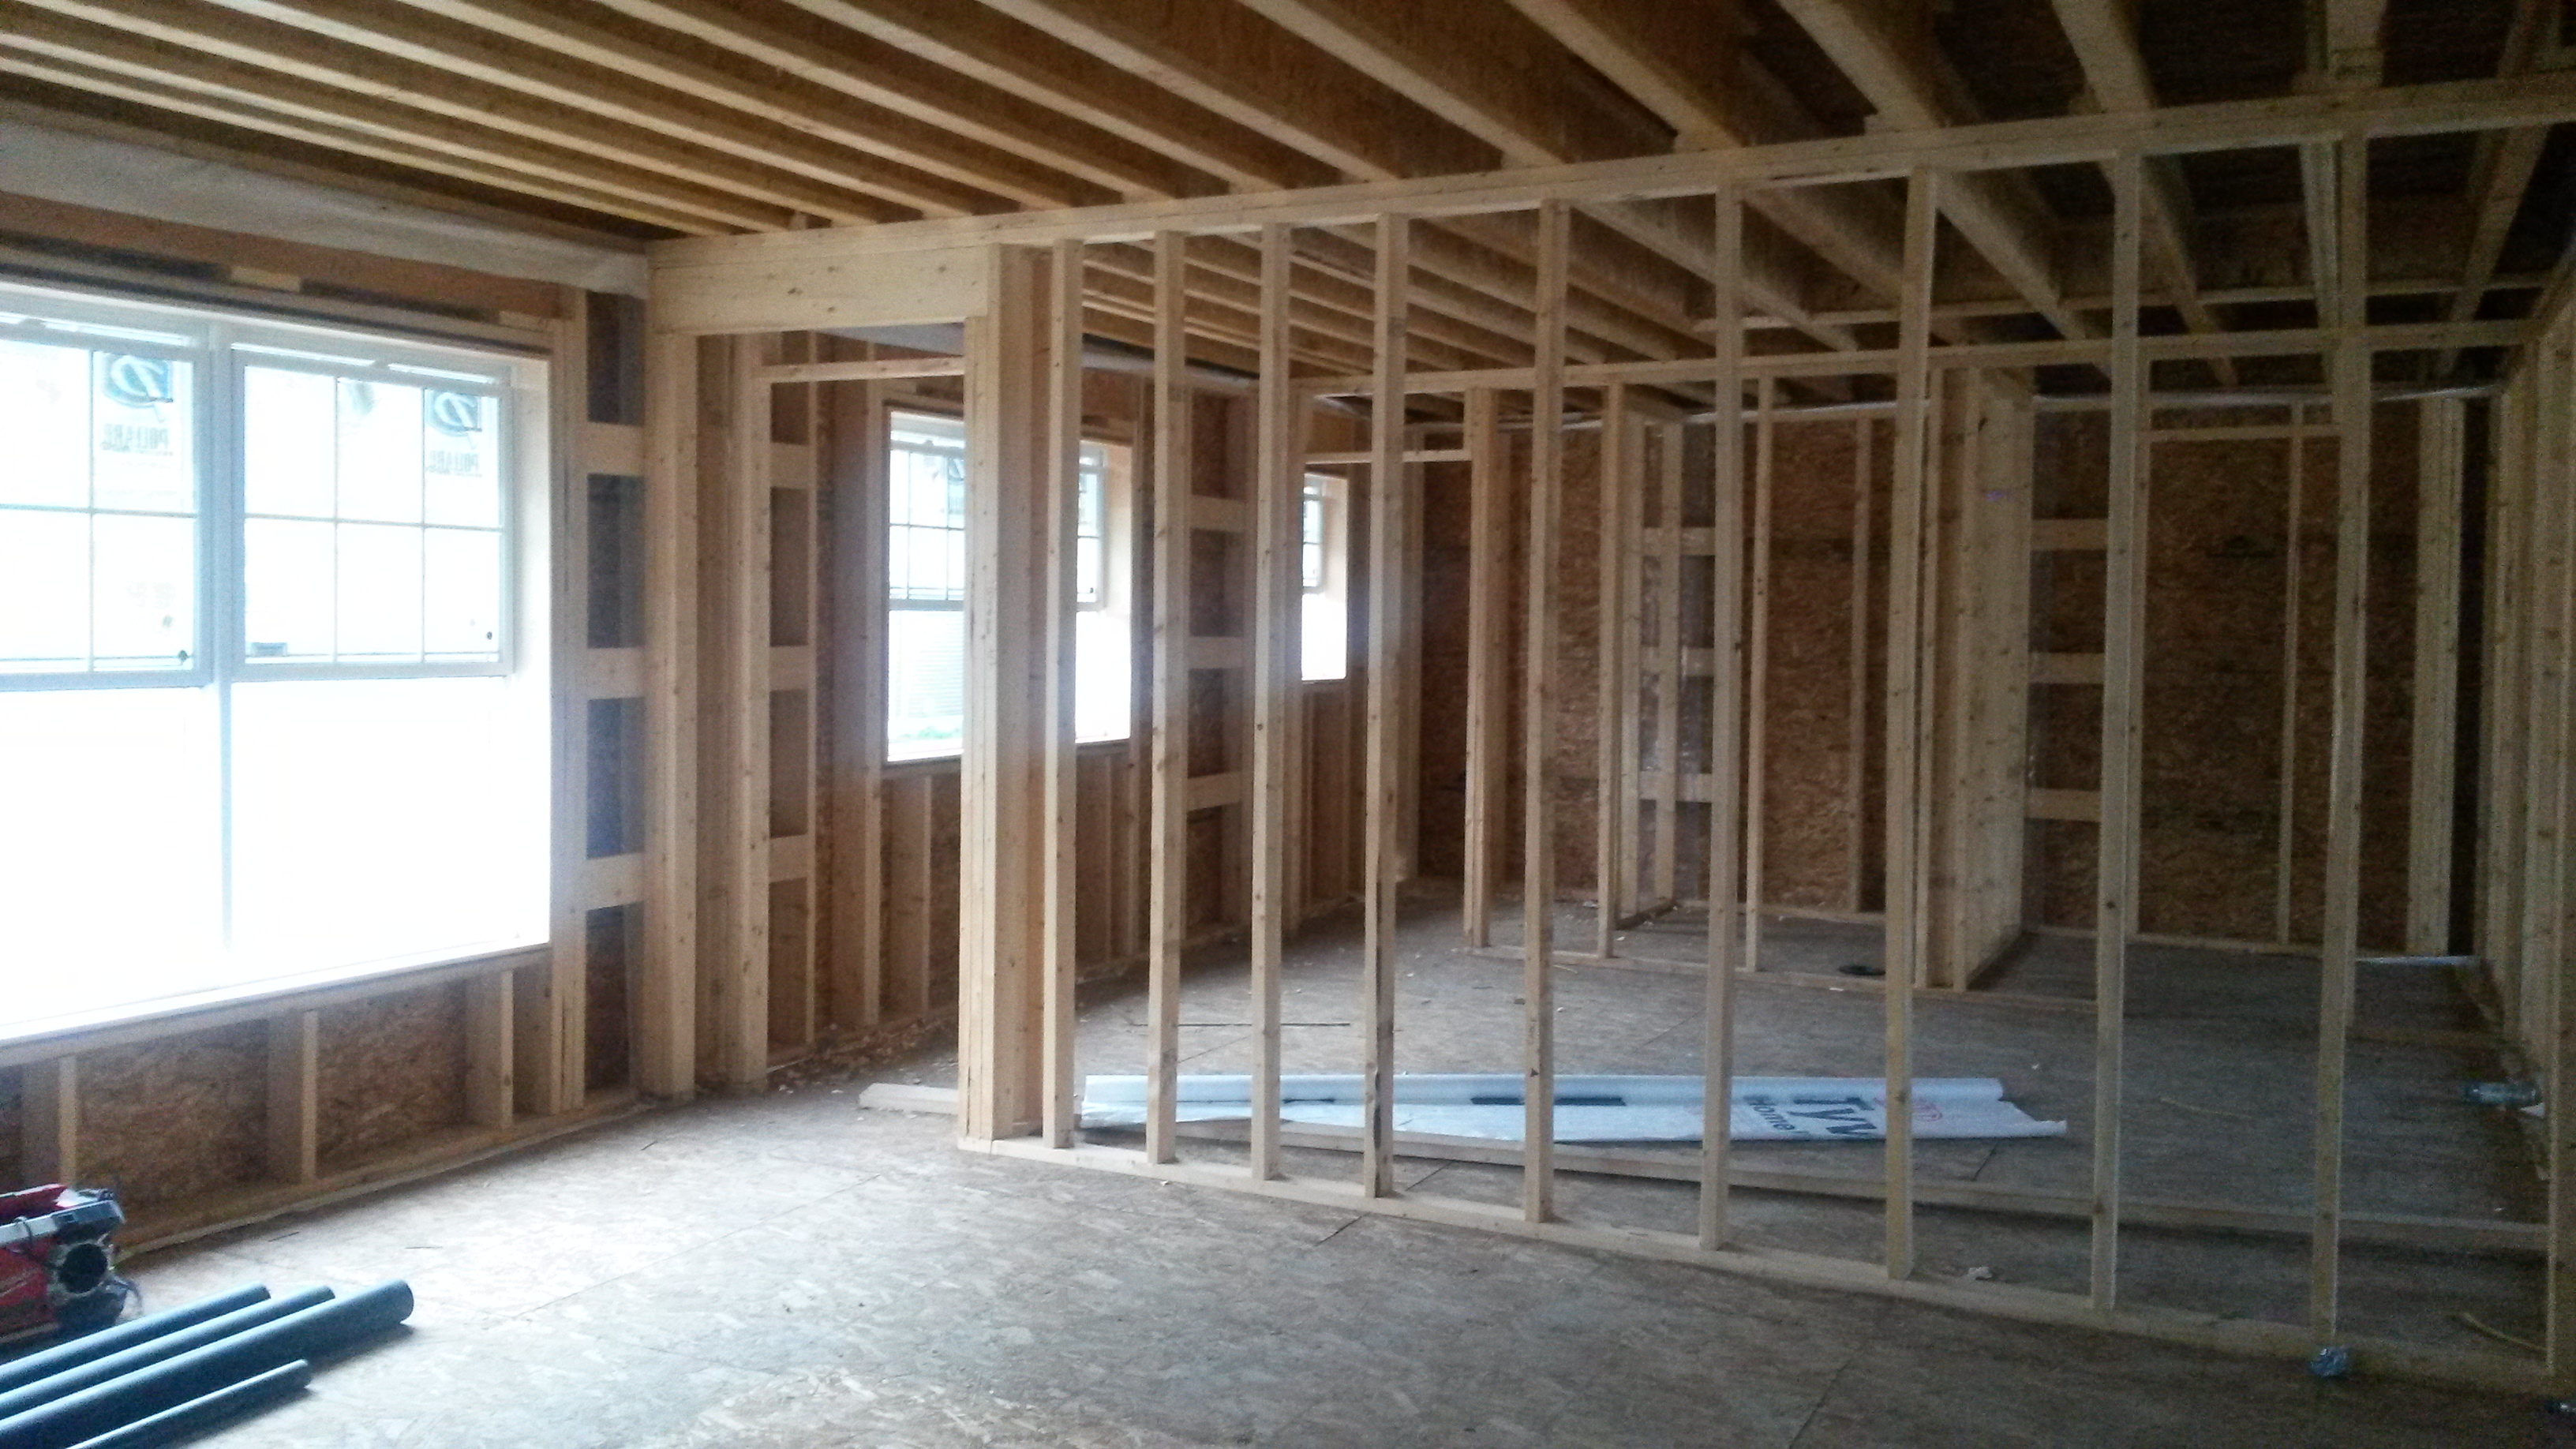 Speaking Of Our Master This Is The View For Now From Living Room Into Bedroom Walk In Closet And Bathroom Its Hard To Tell Without Dry Wall